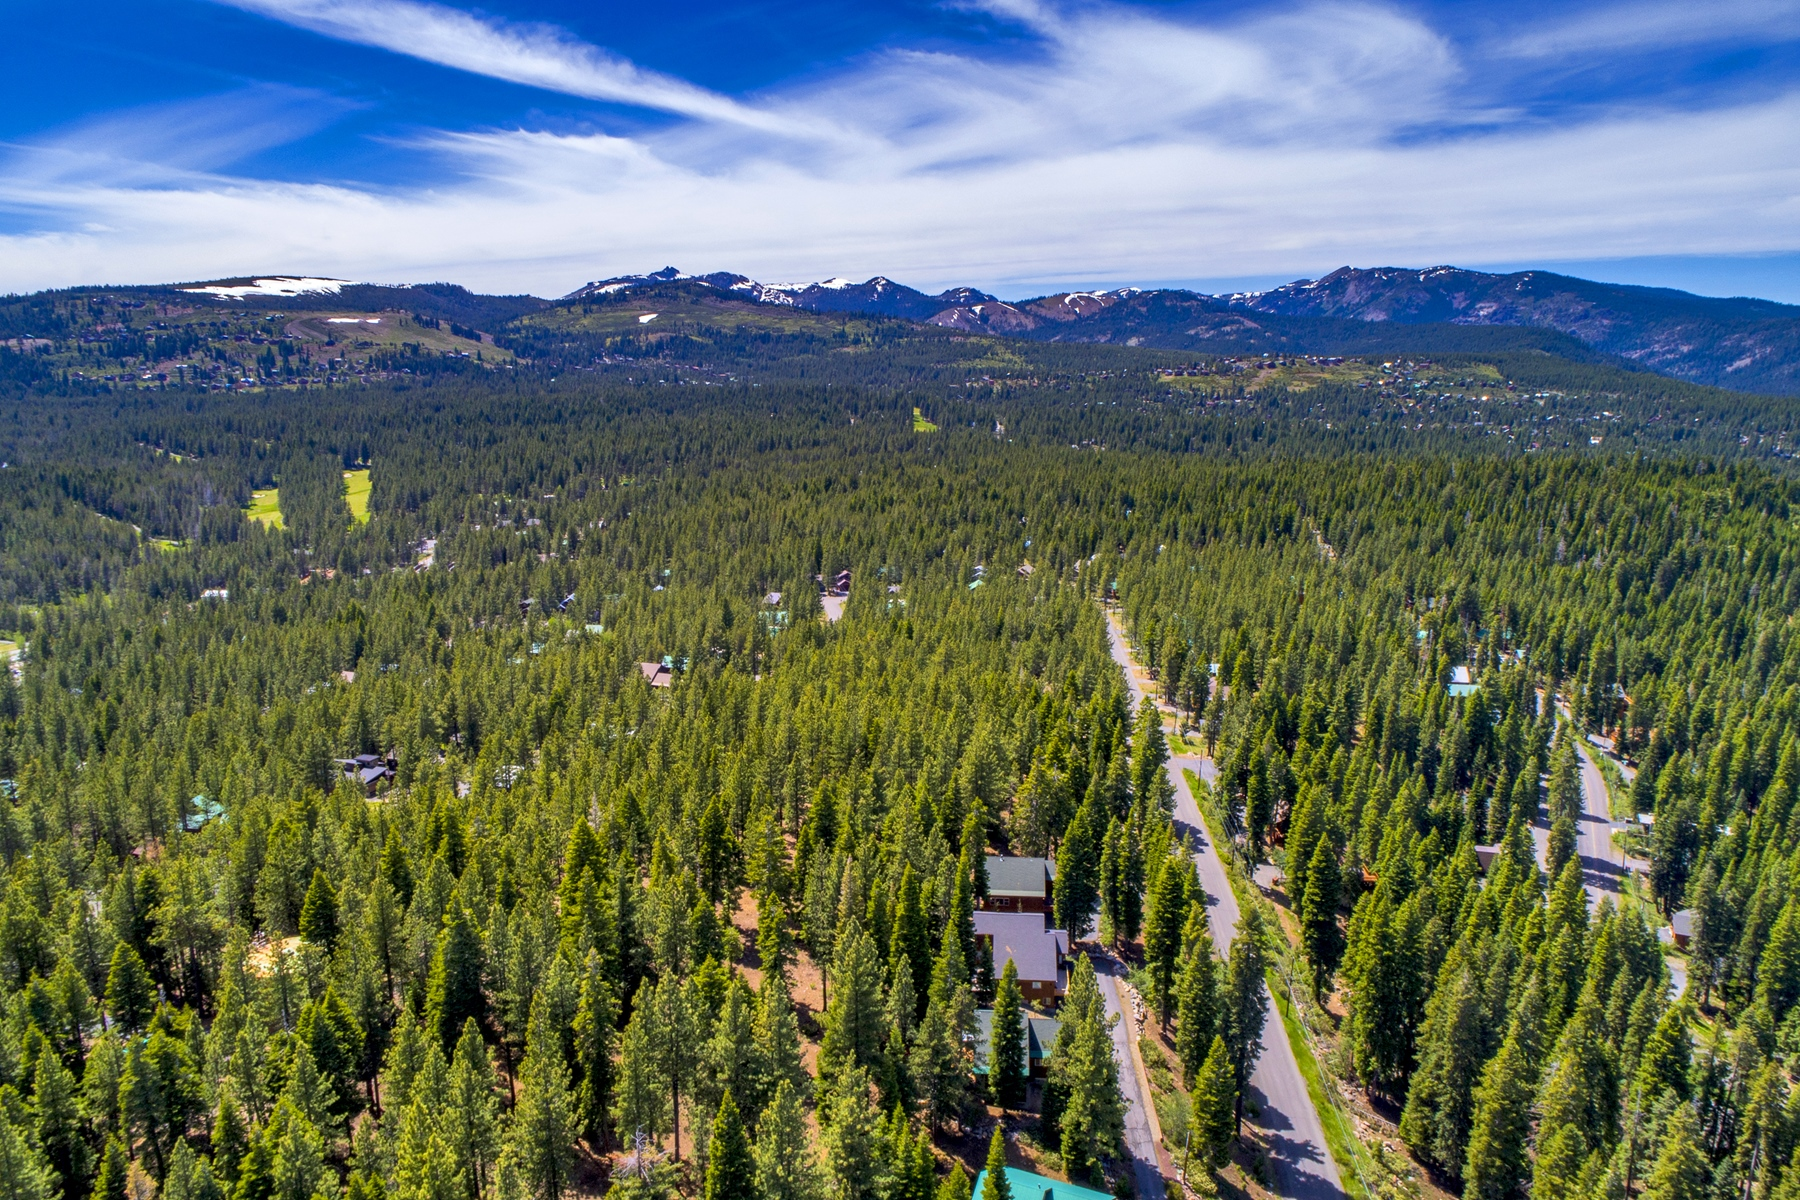 Additional photo for property listing at 12359 Muhlebach Way, Truckee, CA 96161 12359 Muhlebach Way Truckee, California 96161 United States